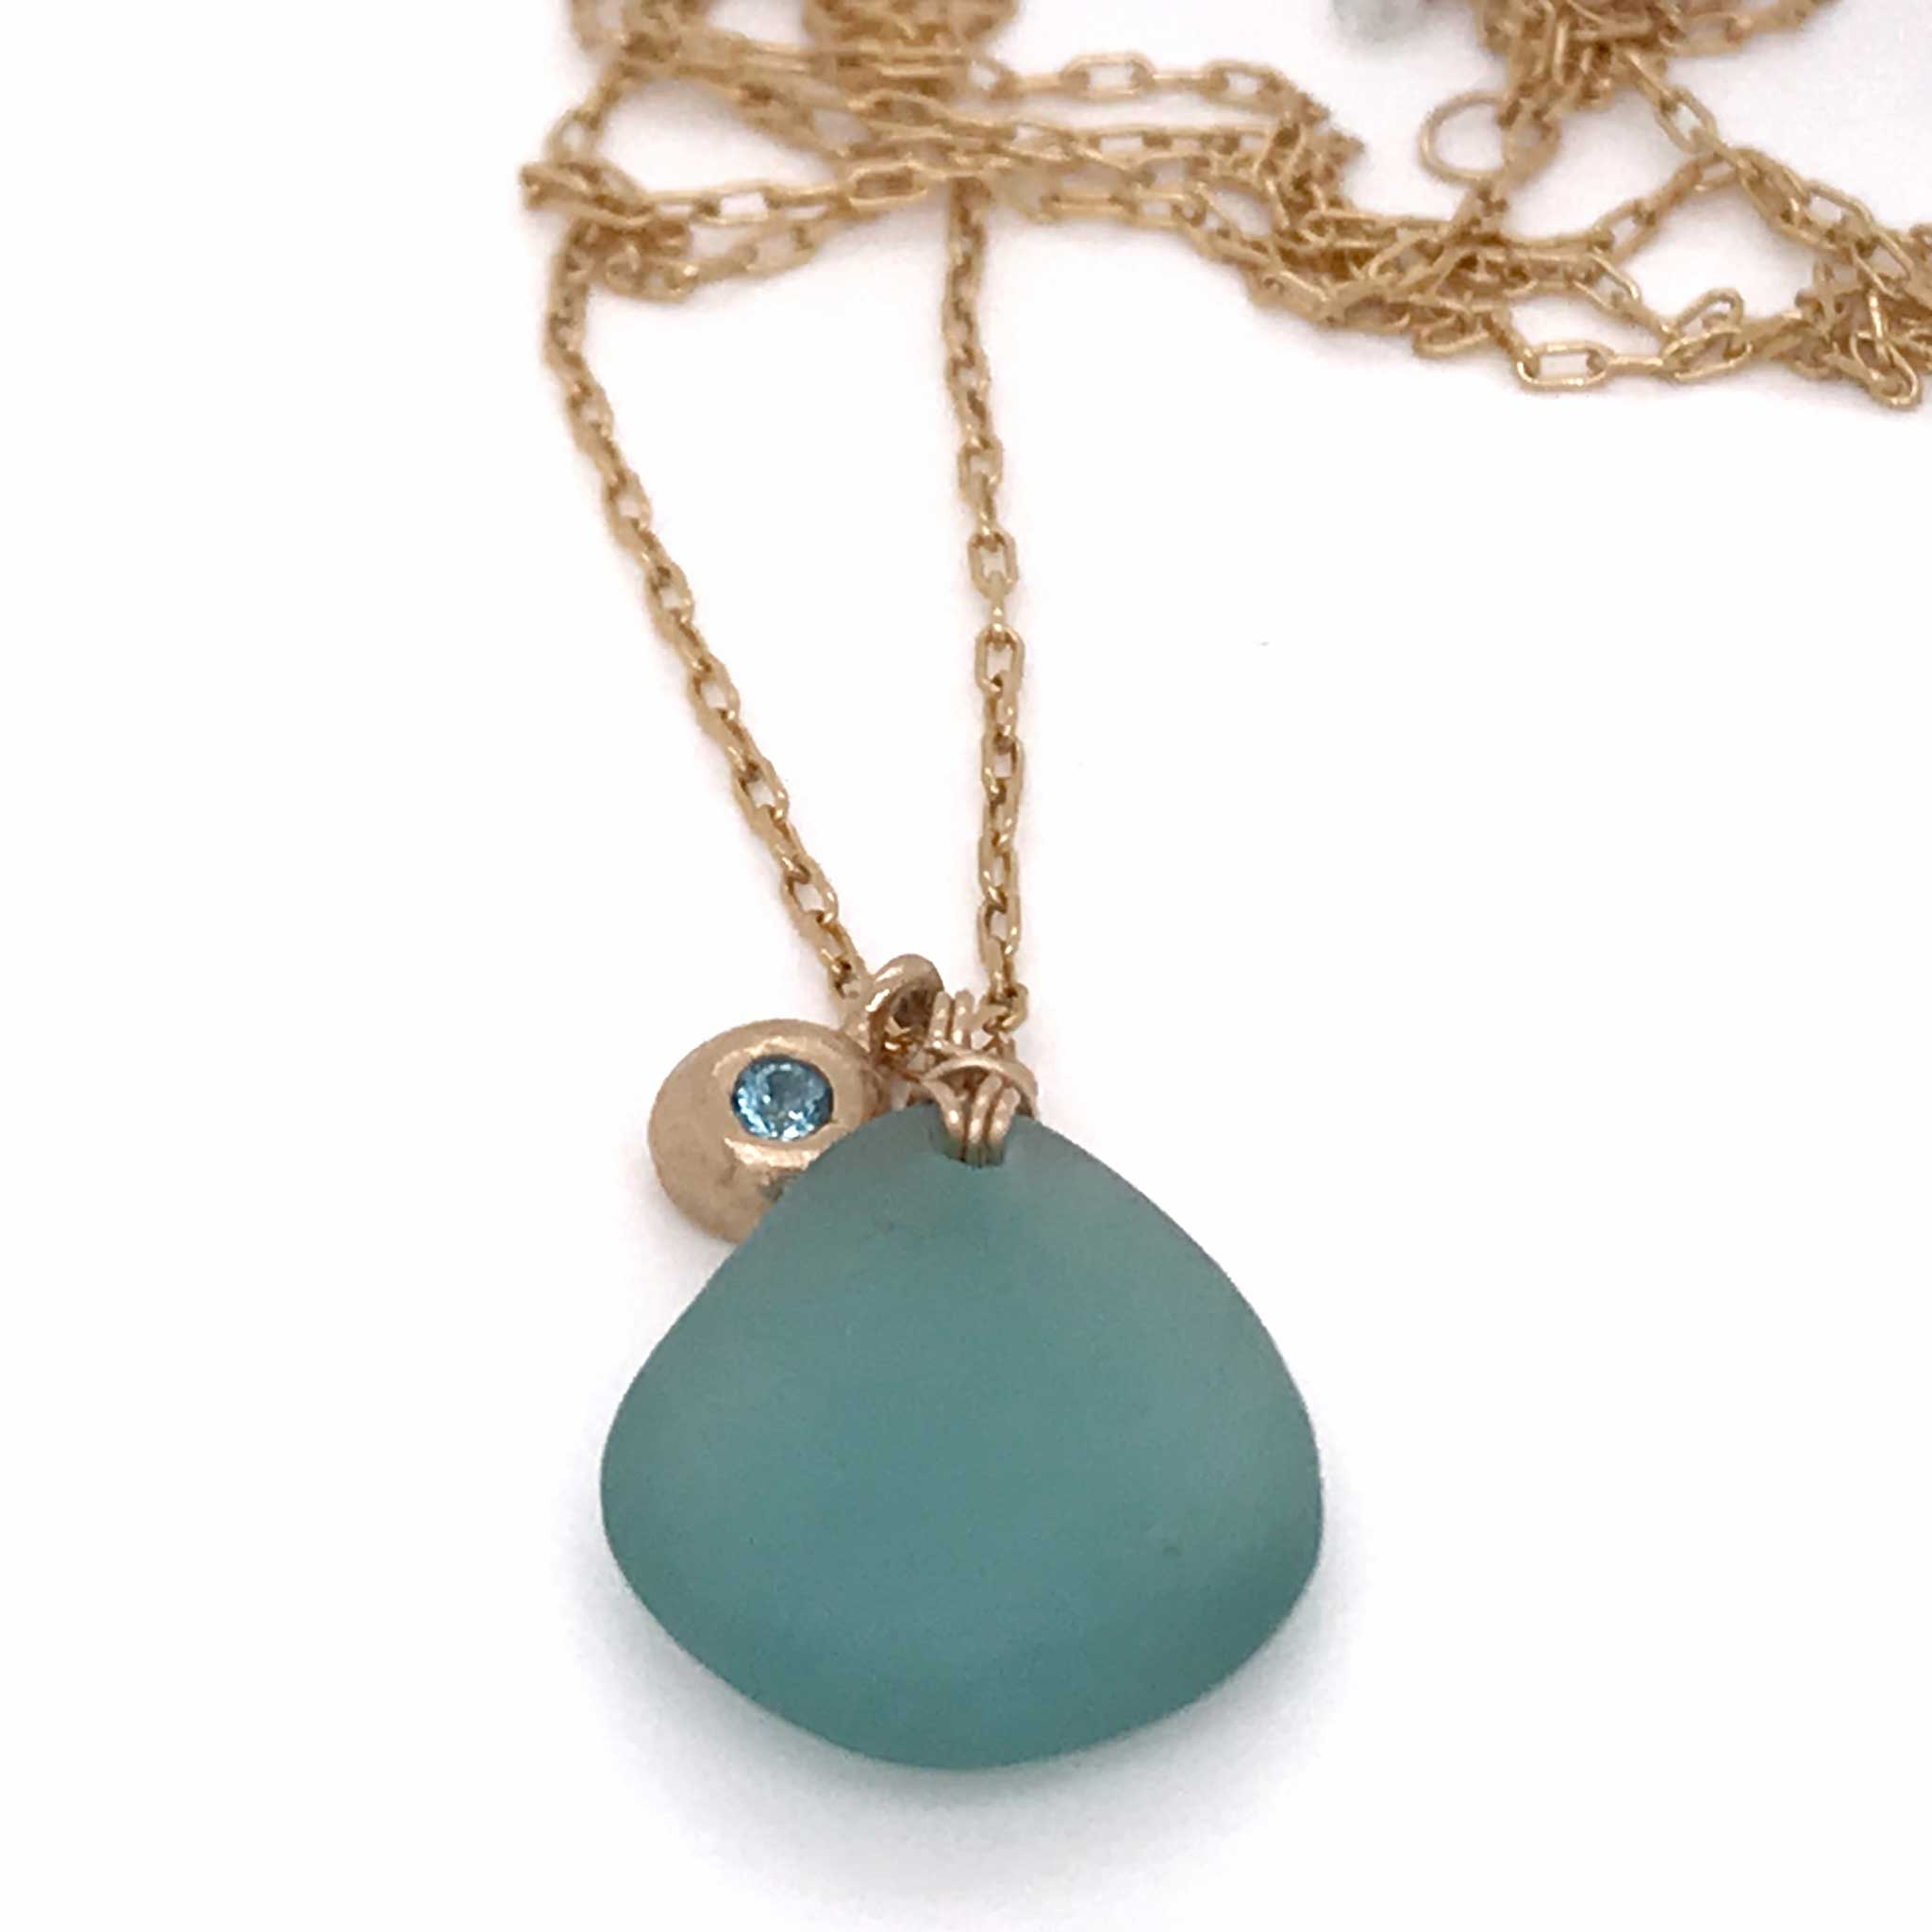 rare aqua sea glass necklace with gold charm and london blue topaz kriket broadhurst unique jewelry